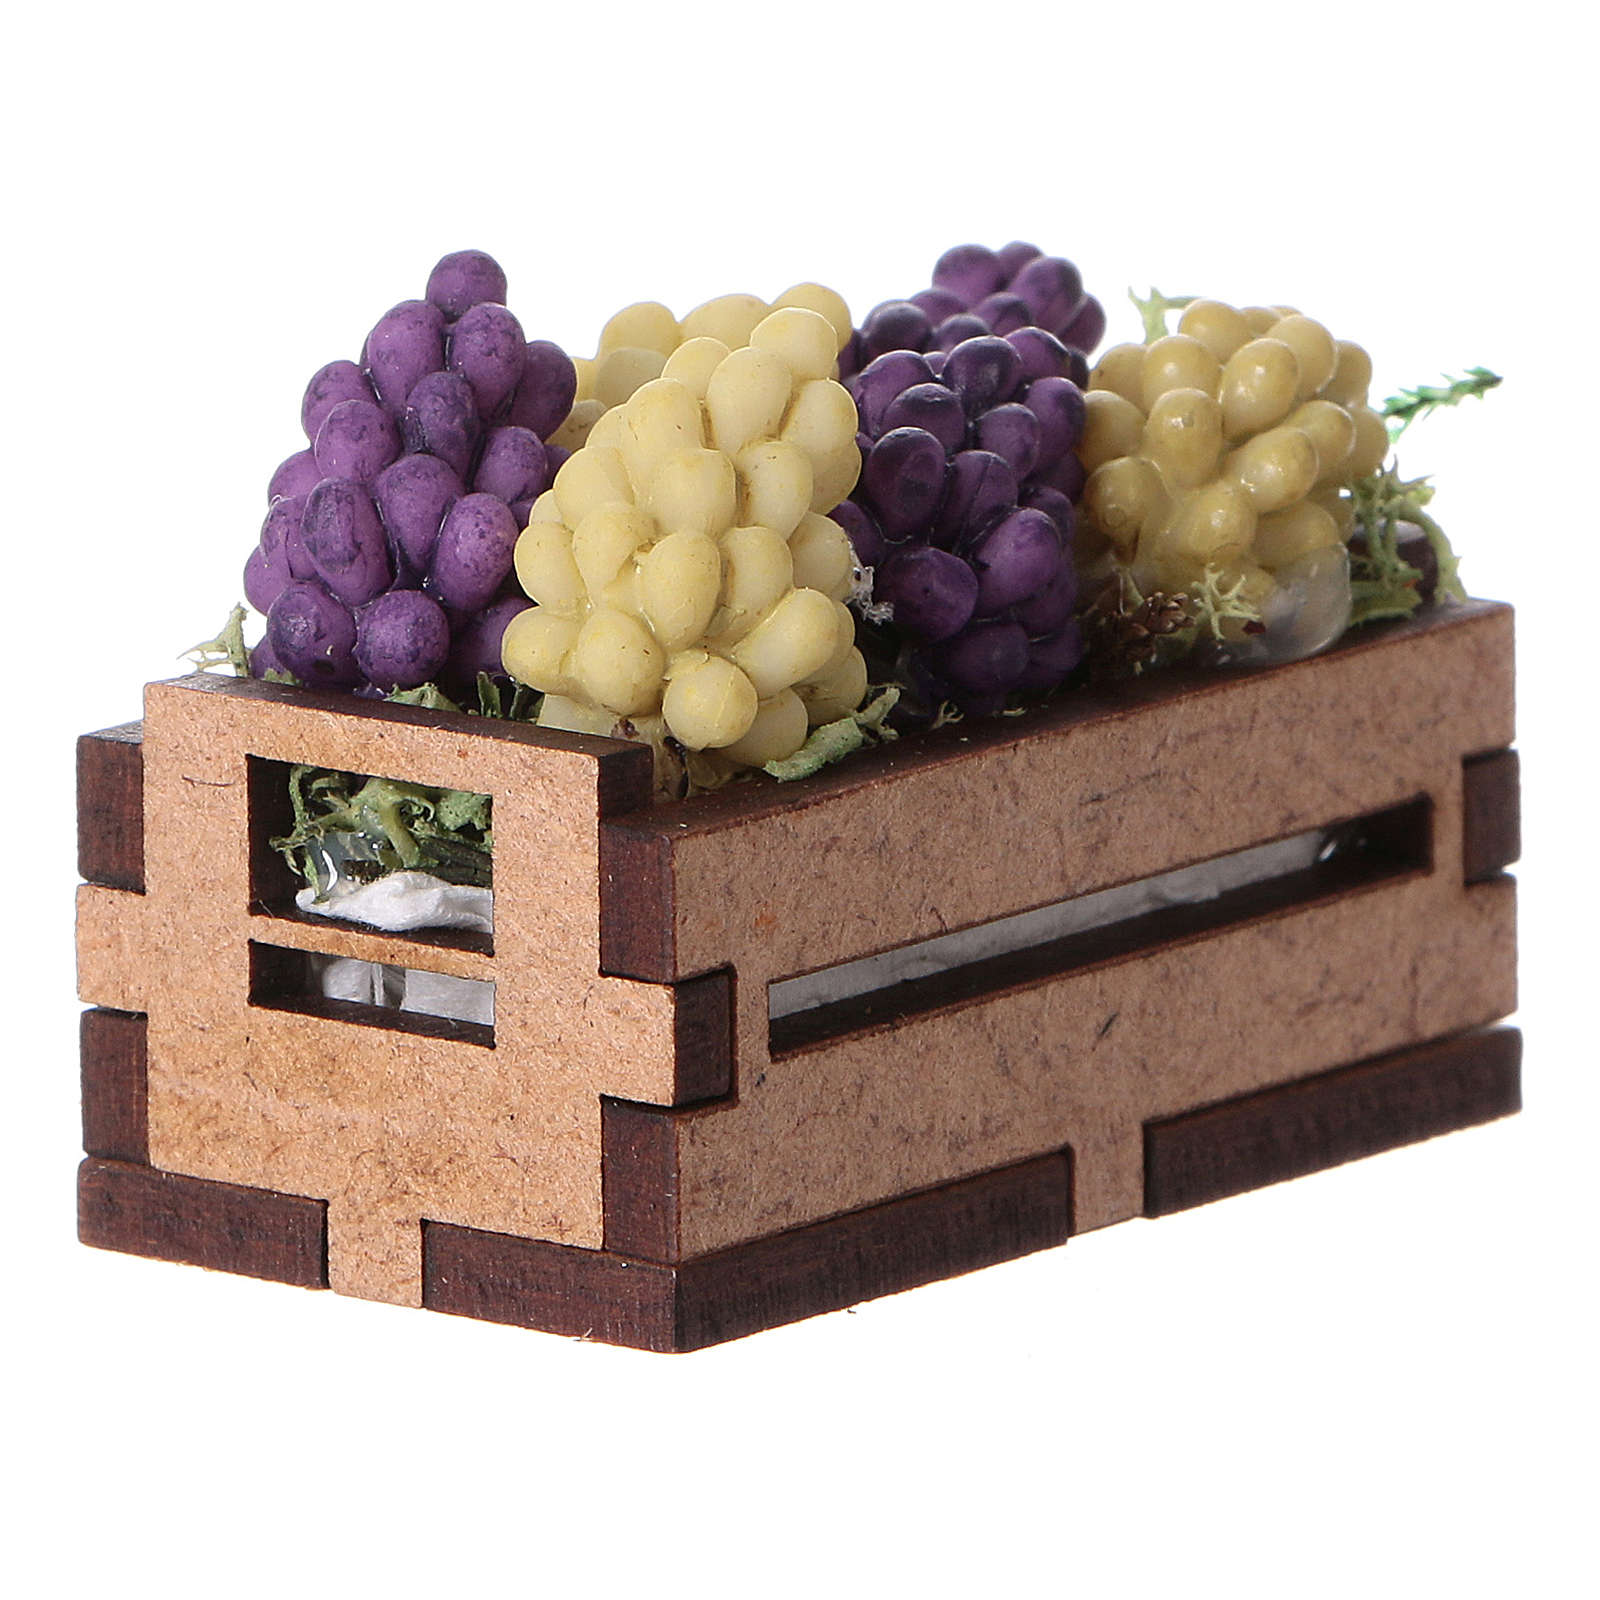 Box with grapes 5x5x5 cm 4